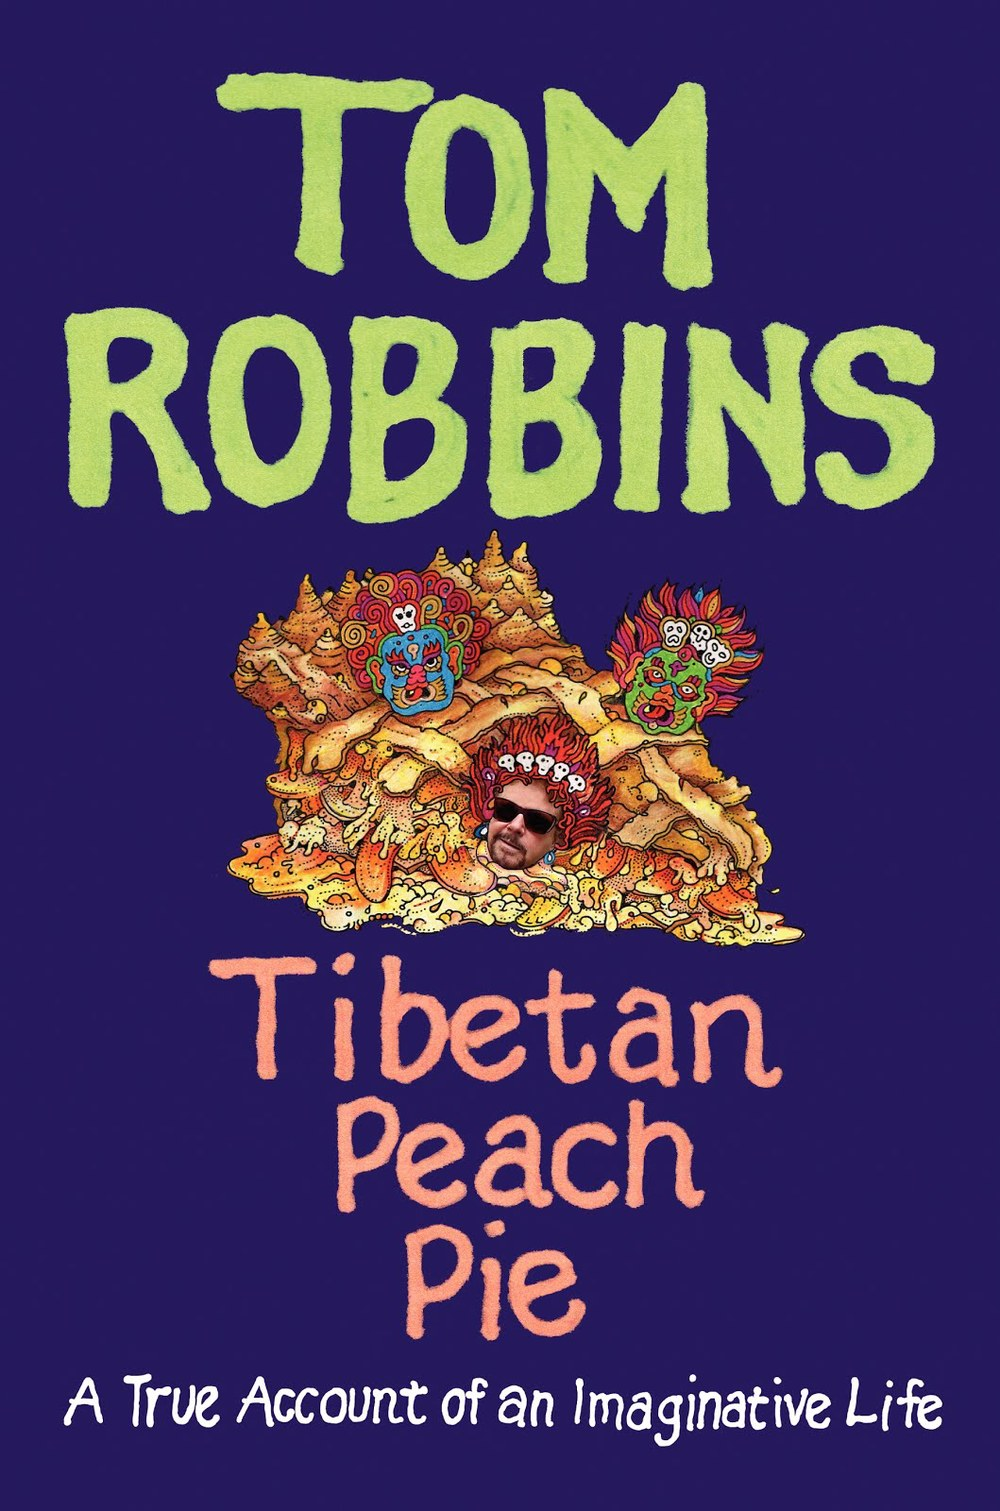 Tibetan Peach Pie Tom Robbins.jpg